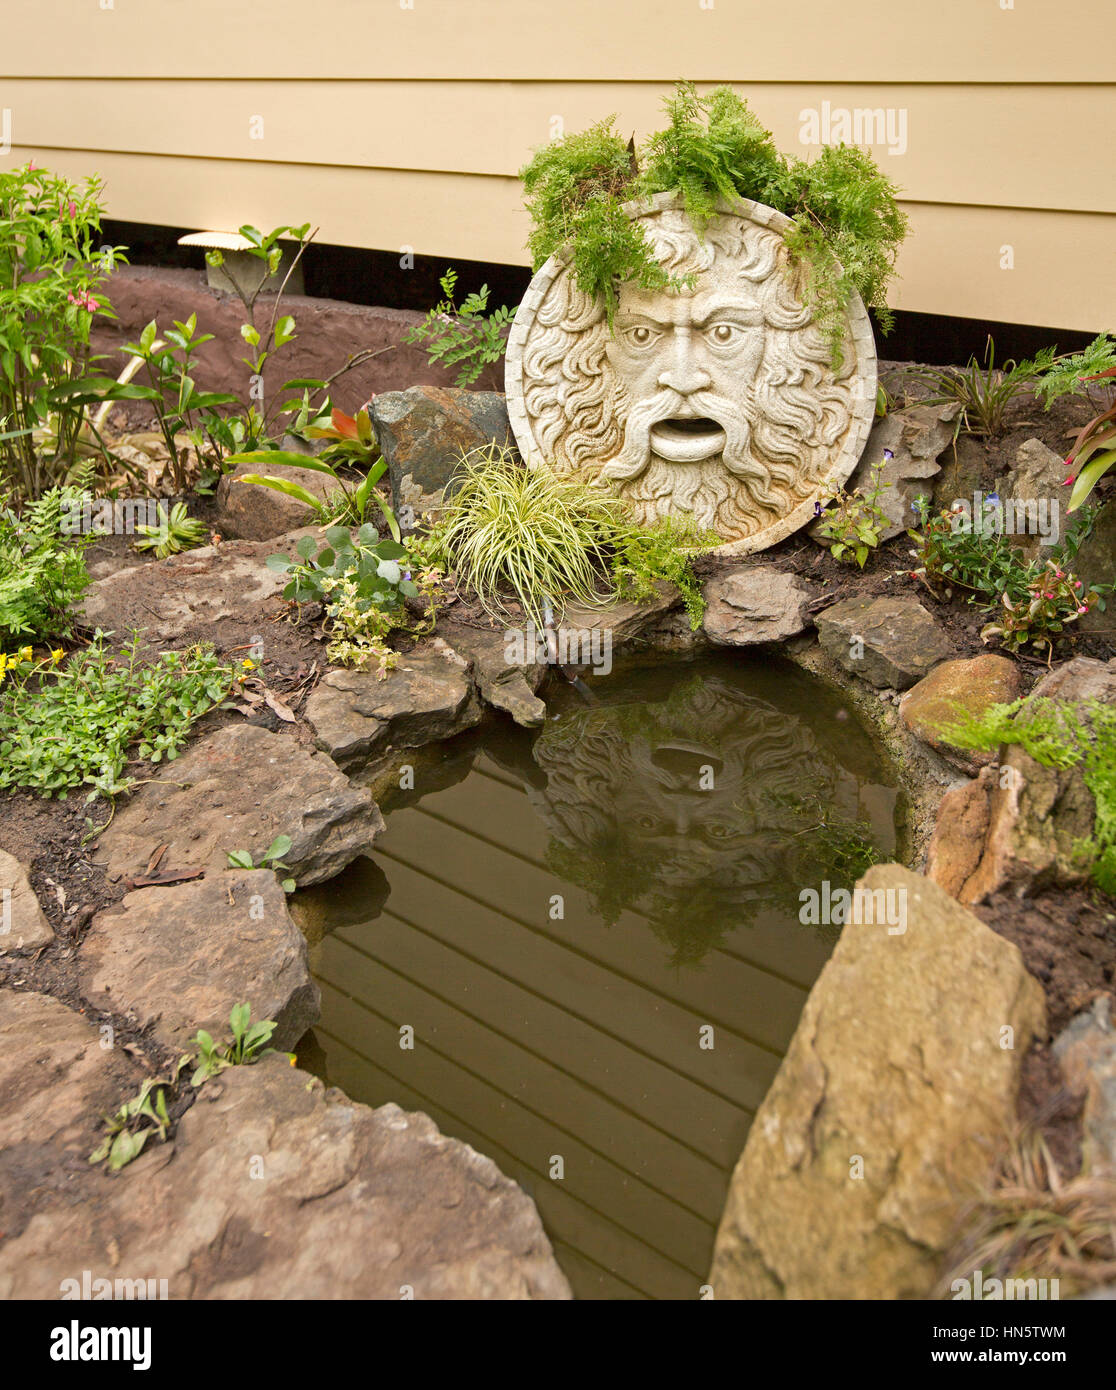 Pond with large sculptured stone face of mythical old man that can spurt water into pool surrounded by rockery with - Stock Image